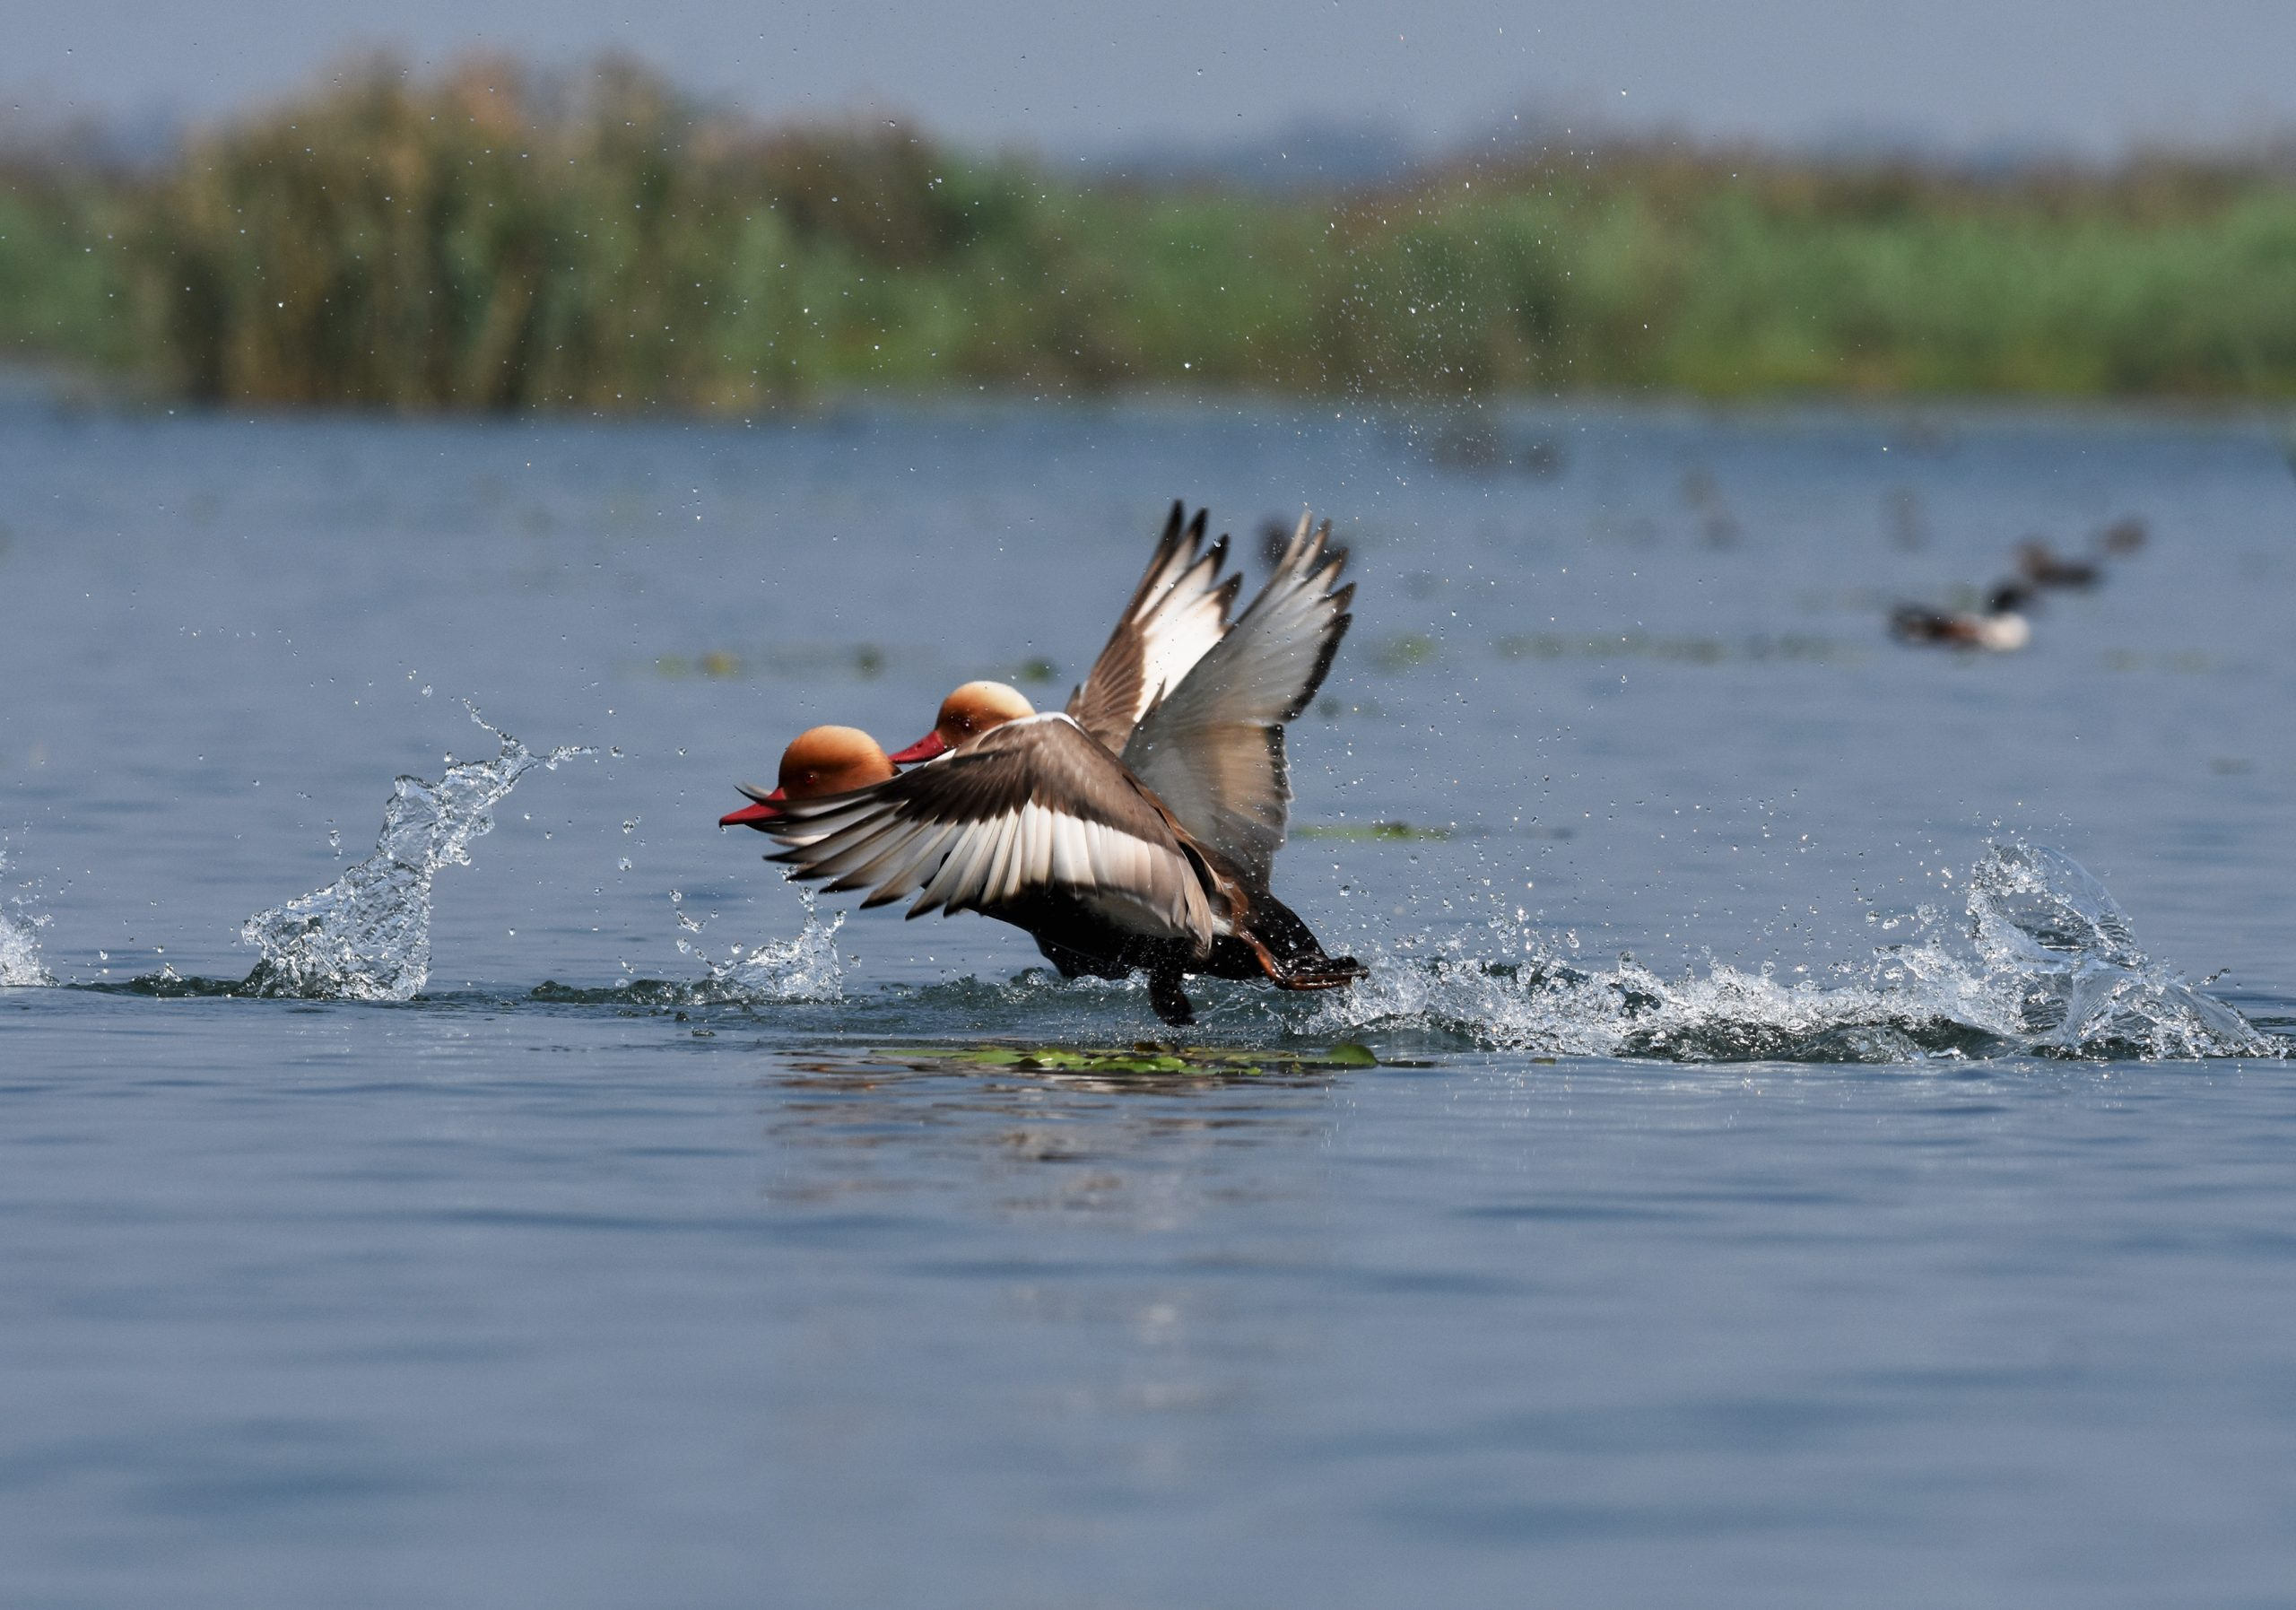 Red-crested pochard birds in a lake